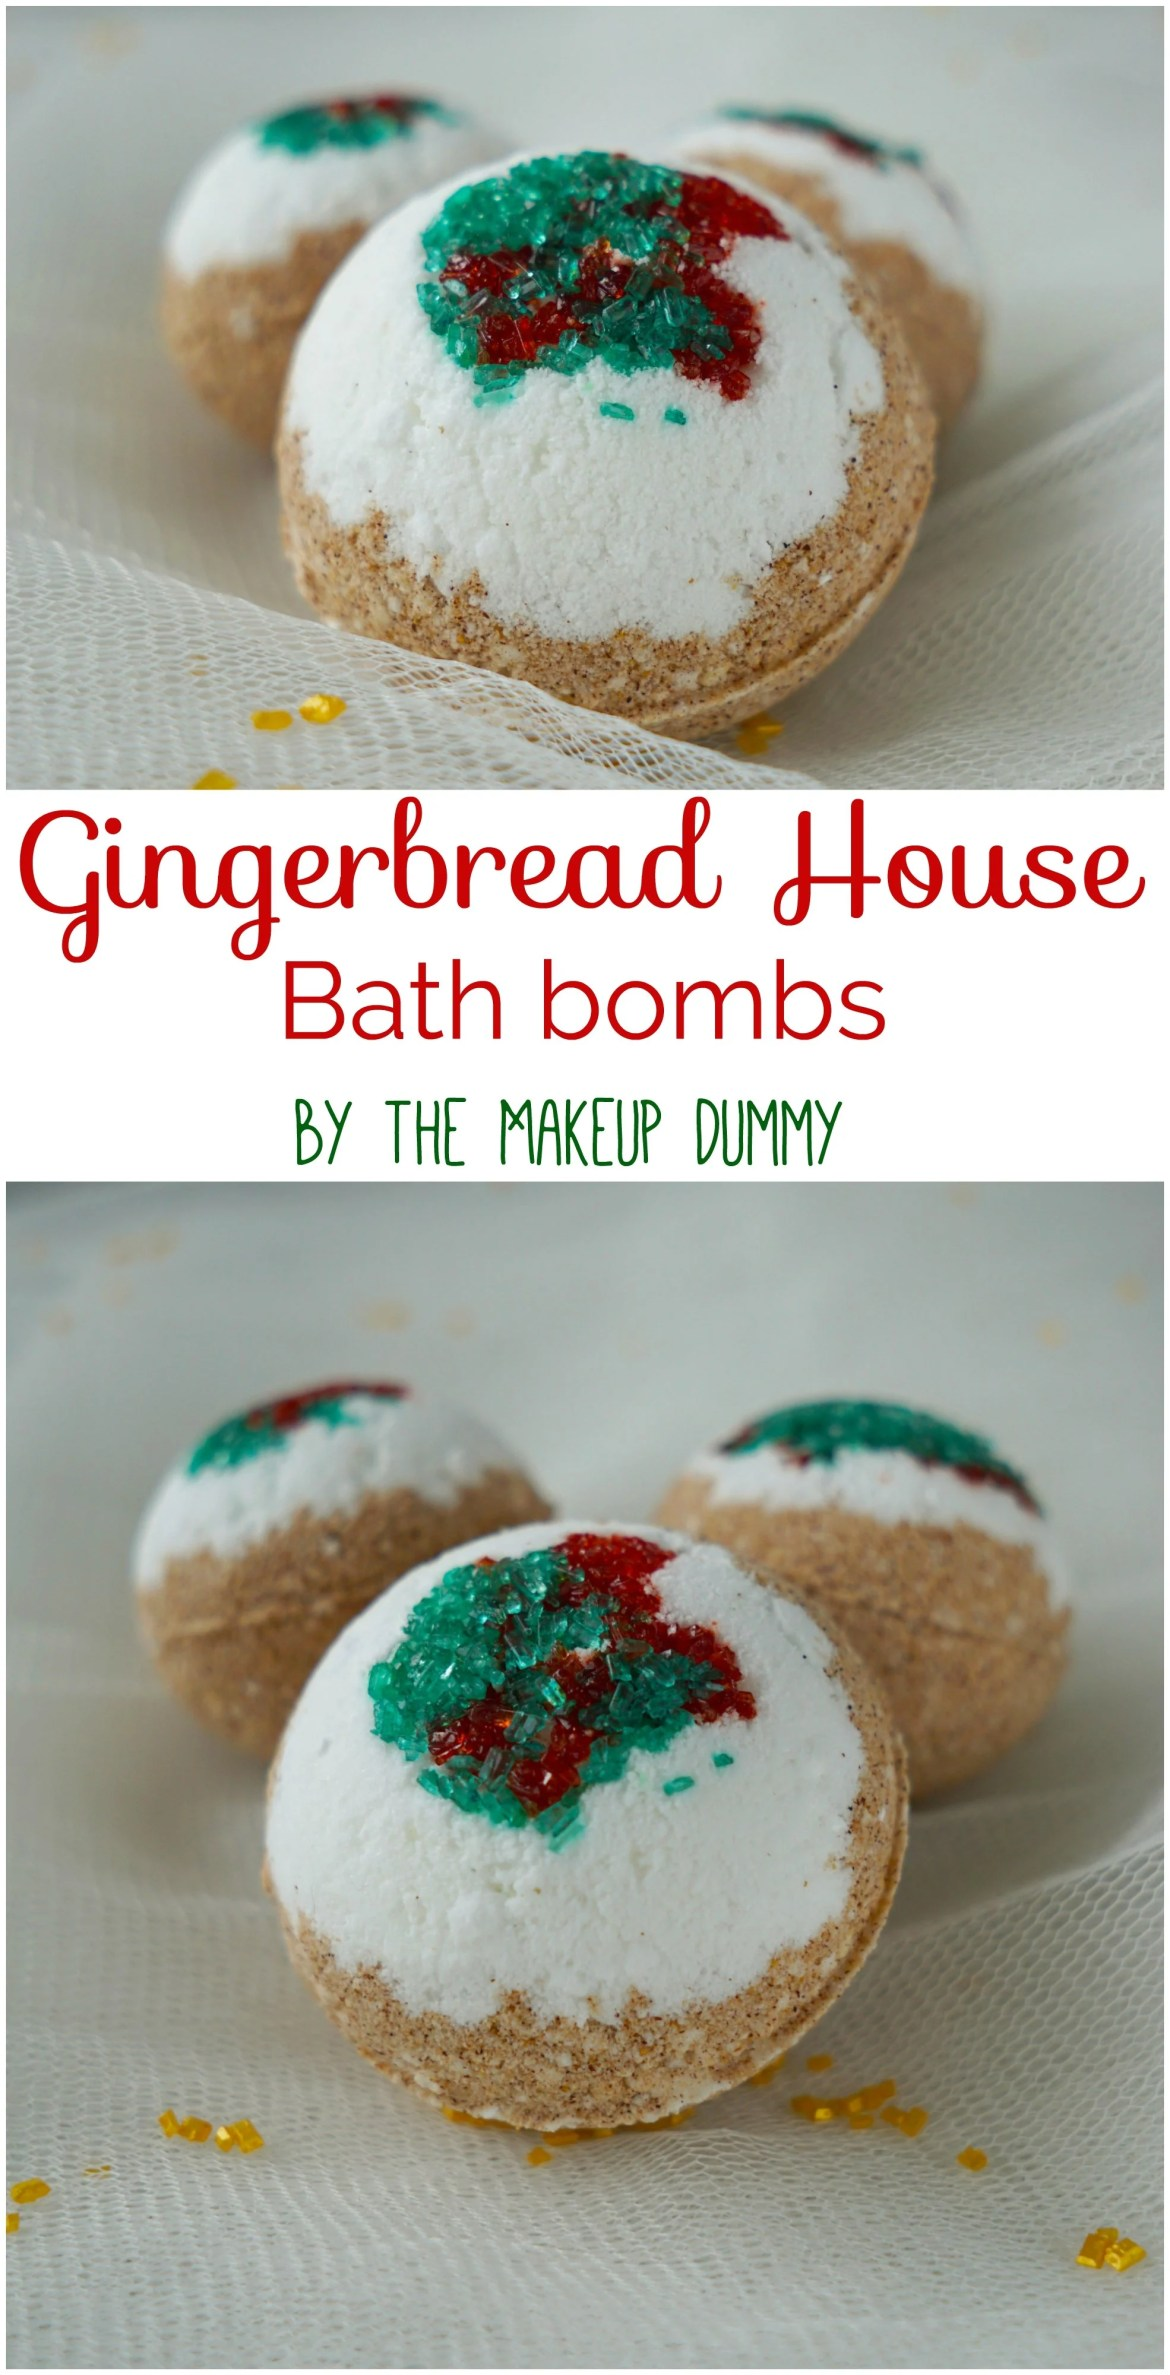 Great Christmas Gift idea! These DIY Gingerbread House Bath Bombs are so easy to make and are a perfect stocking stuffer or secreat santa gift! Tutorial by The Makeup Dummy